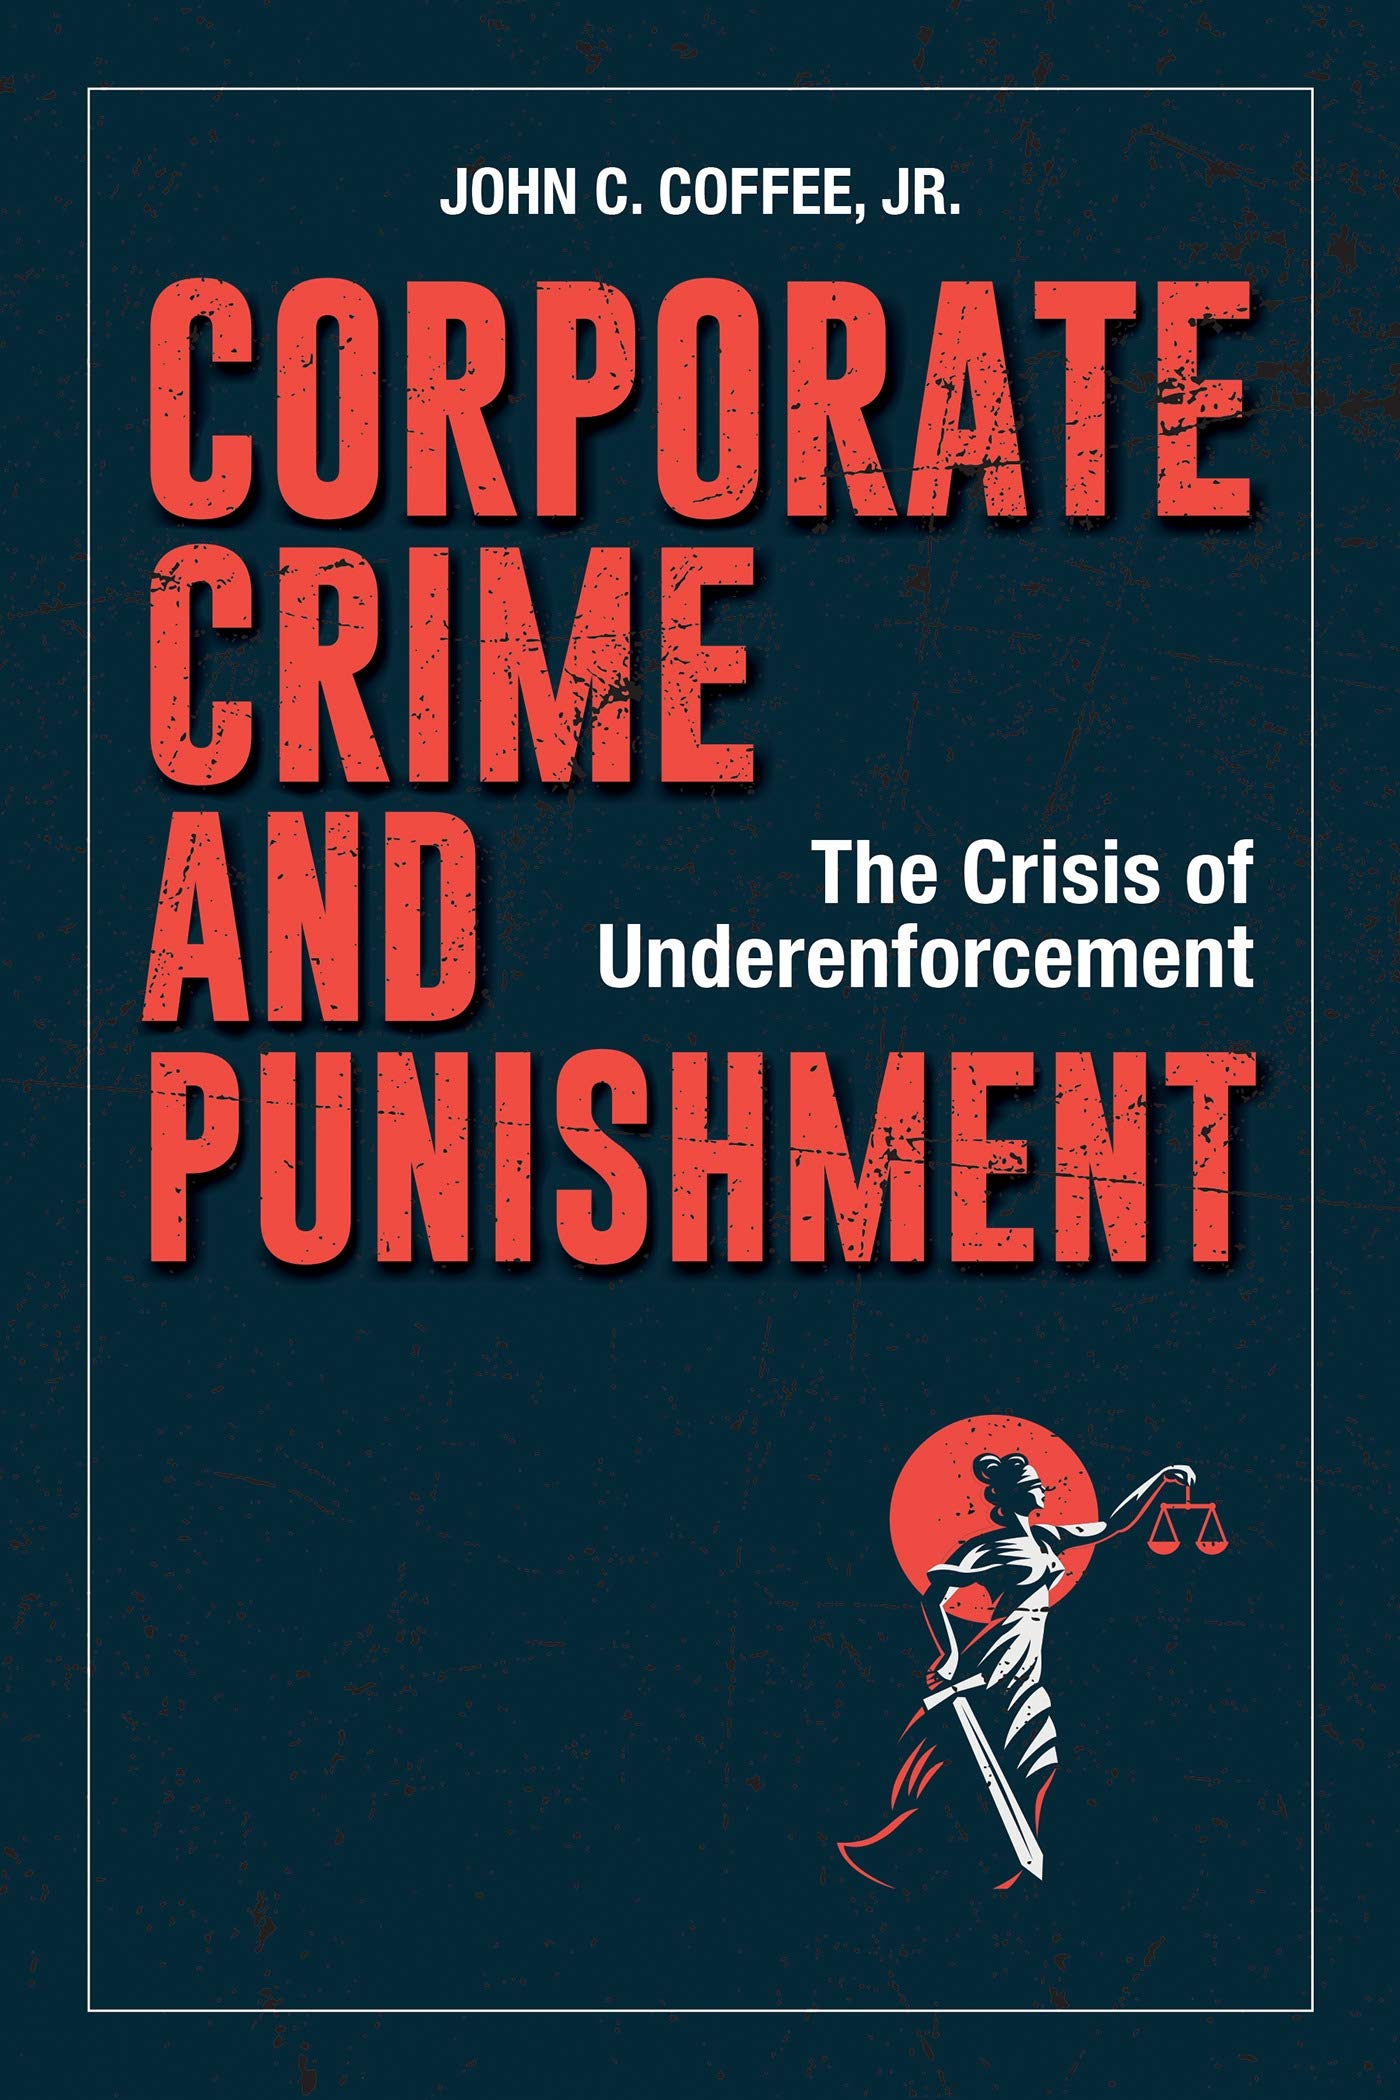 Image OfCorporate Crime And Punishment: The Crisis Of Underenforcement